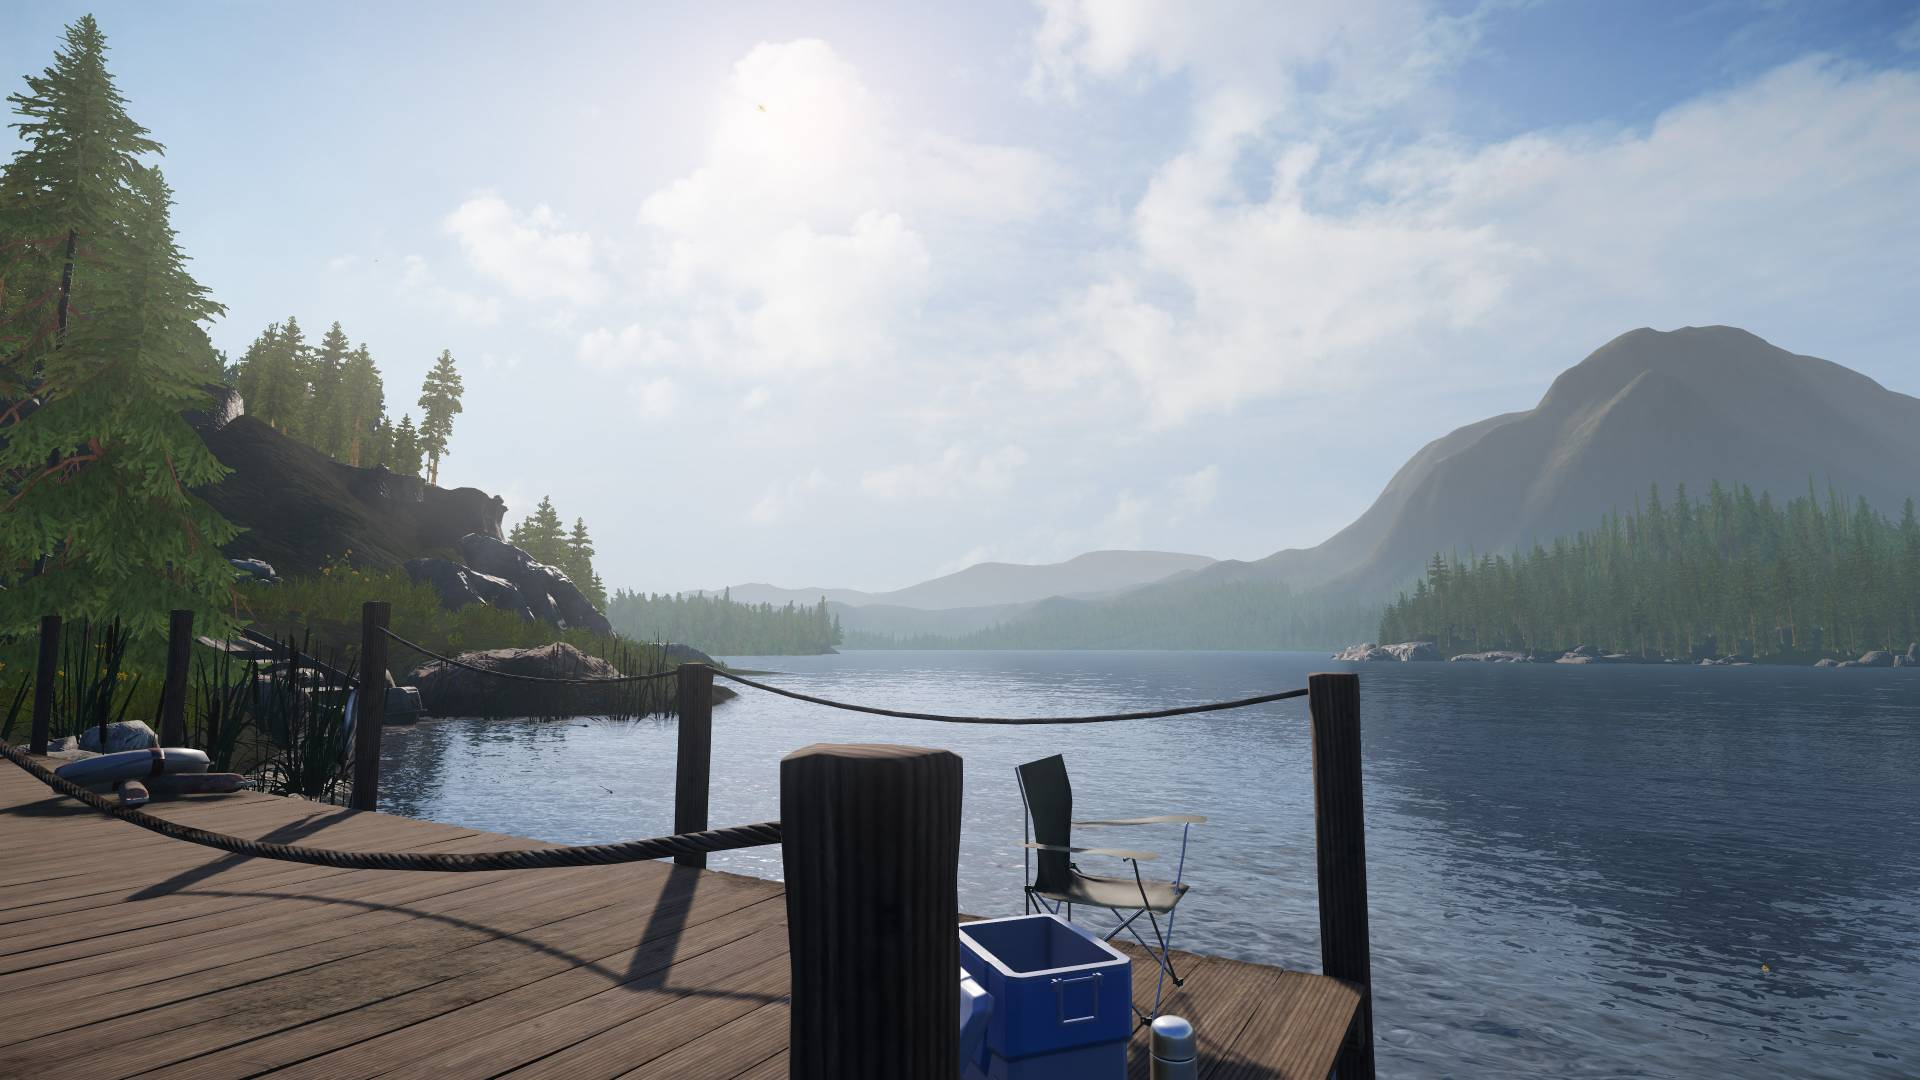 FishingVR Background